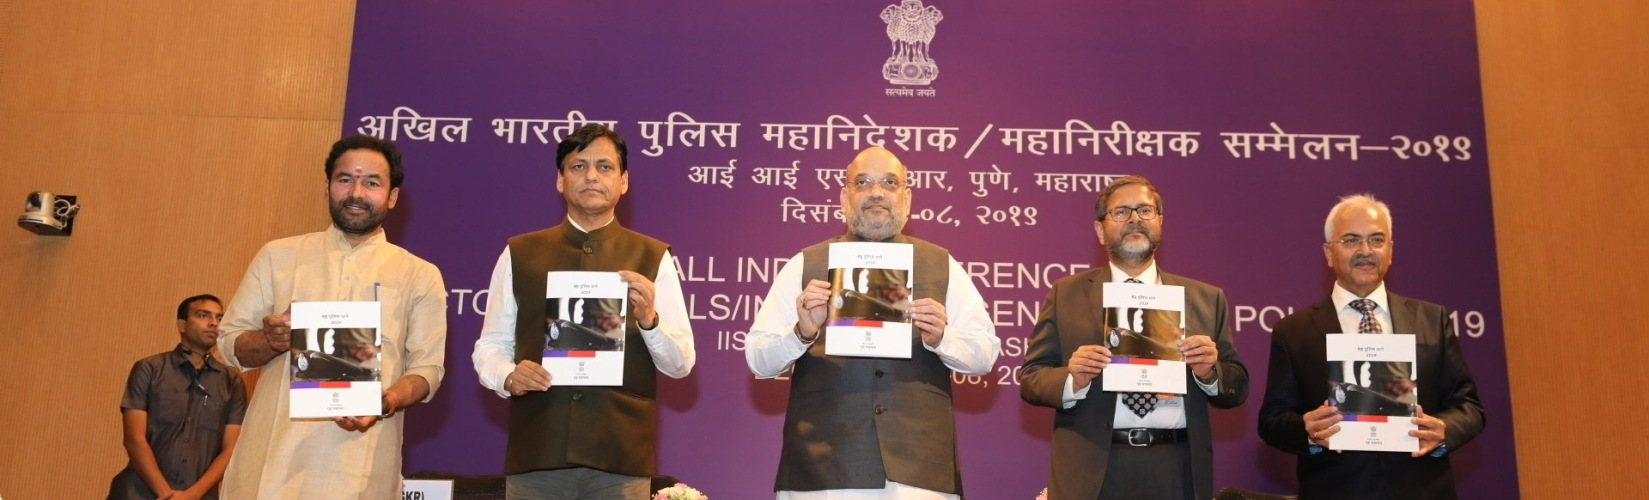 The Union Home Minister, Shri Amit Shah releasing the booklet during the All India Conference of Director Generals/Inspector Generals of  Police-2019 in Pune, on December  06, 2019